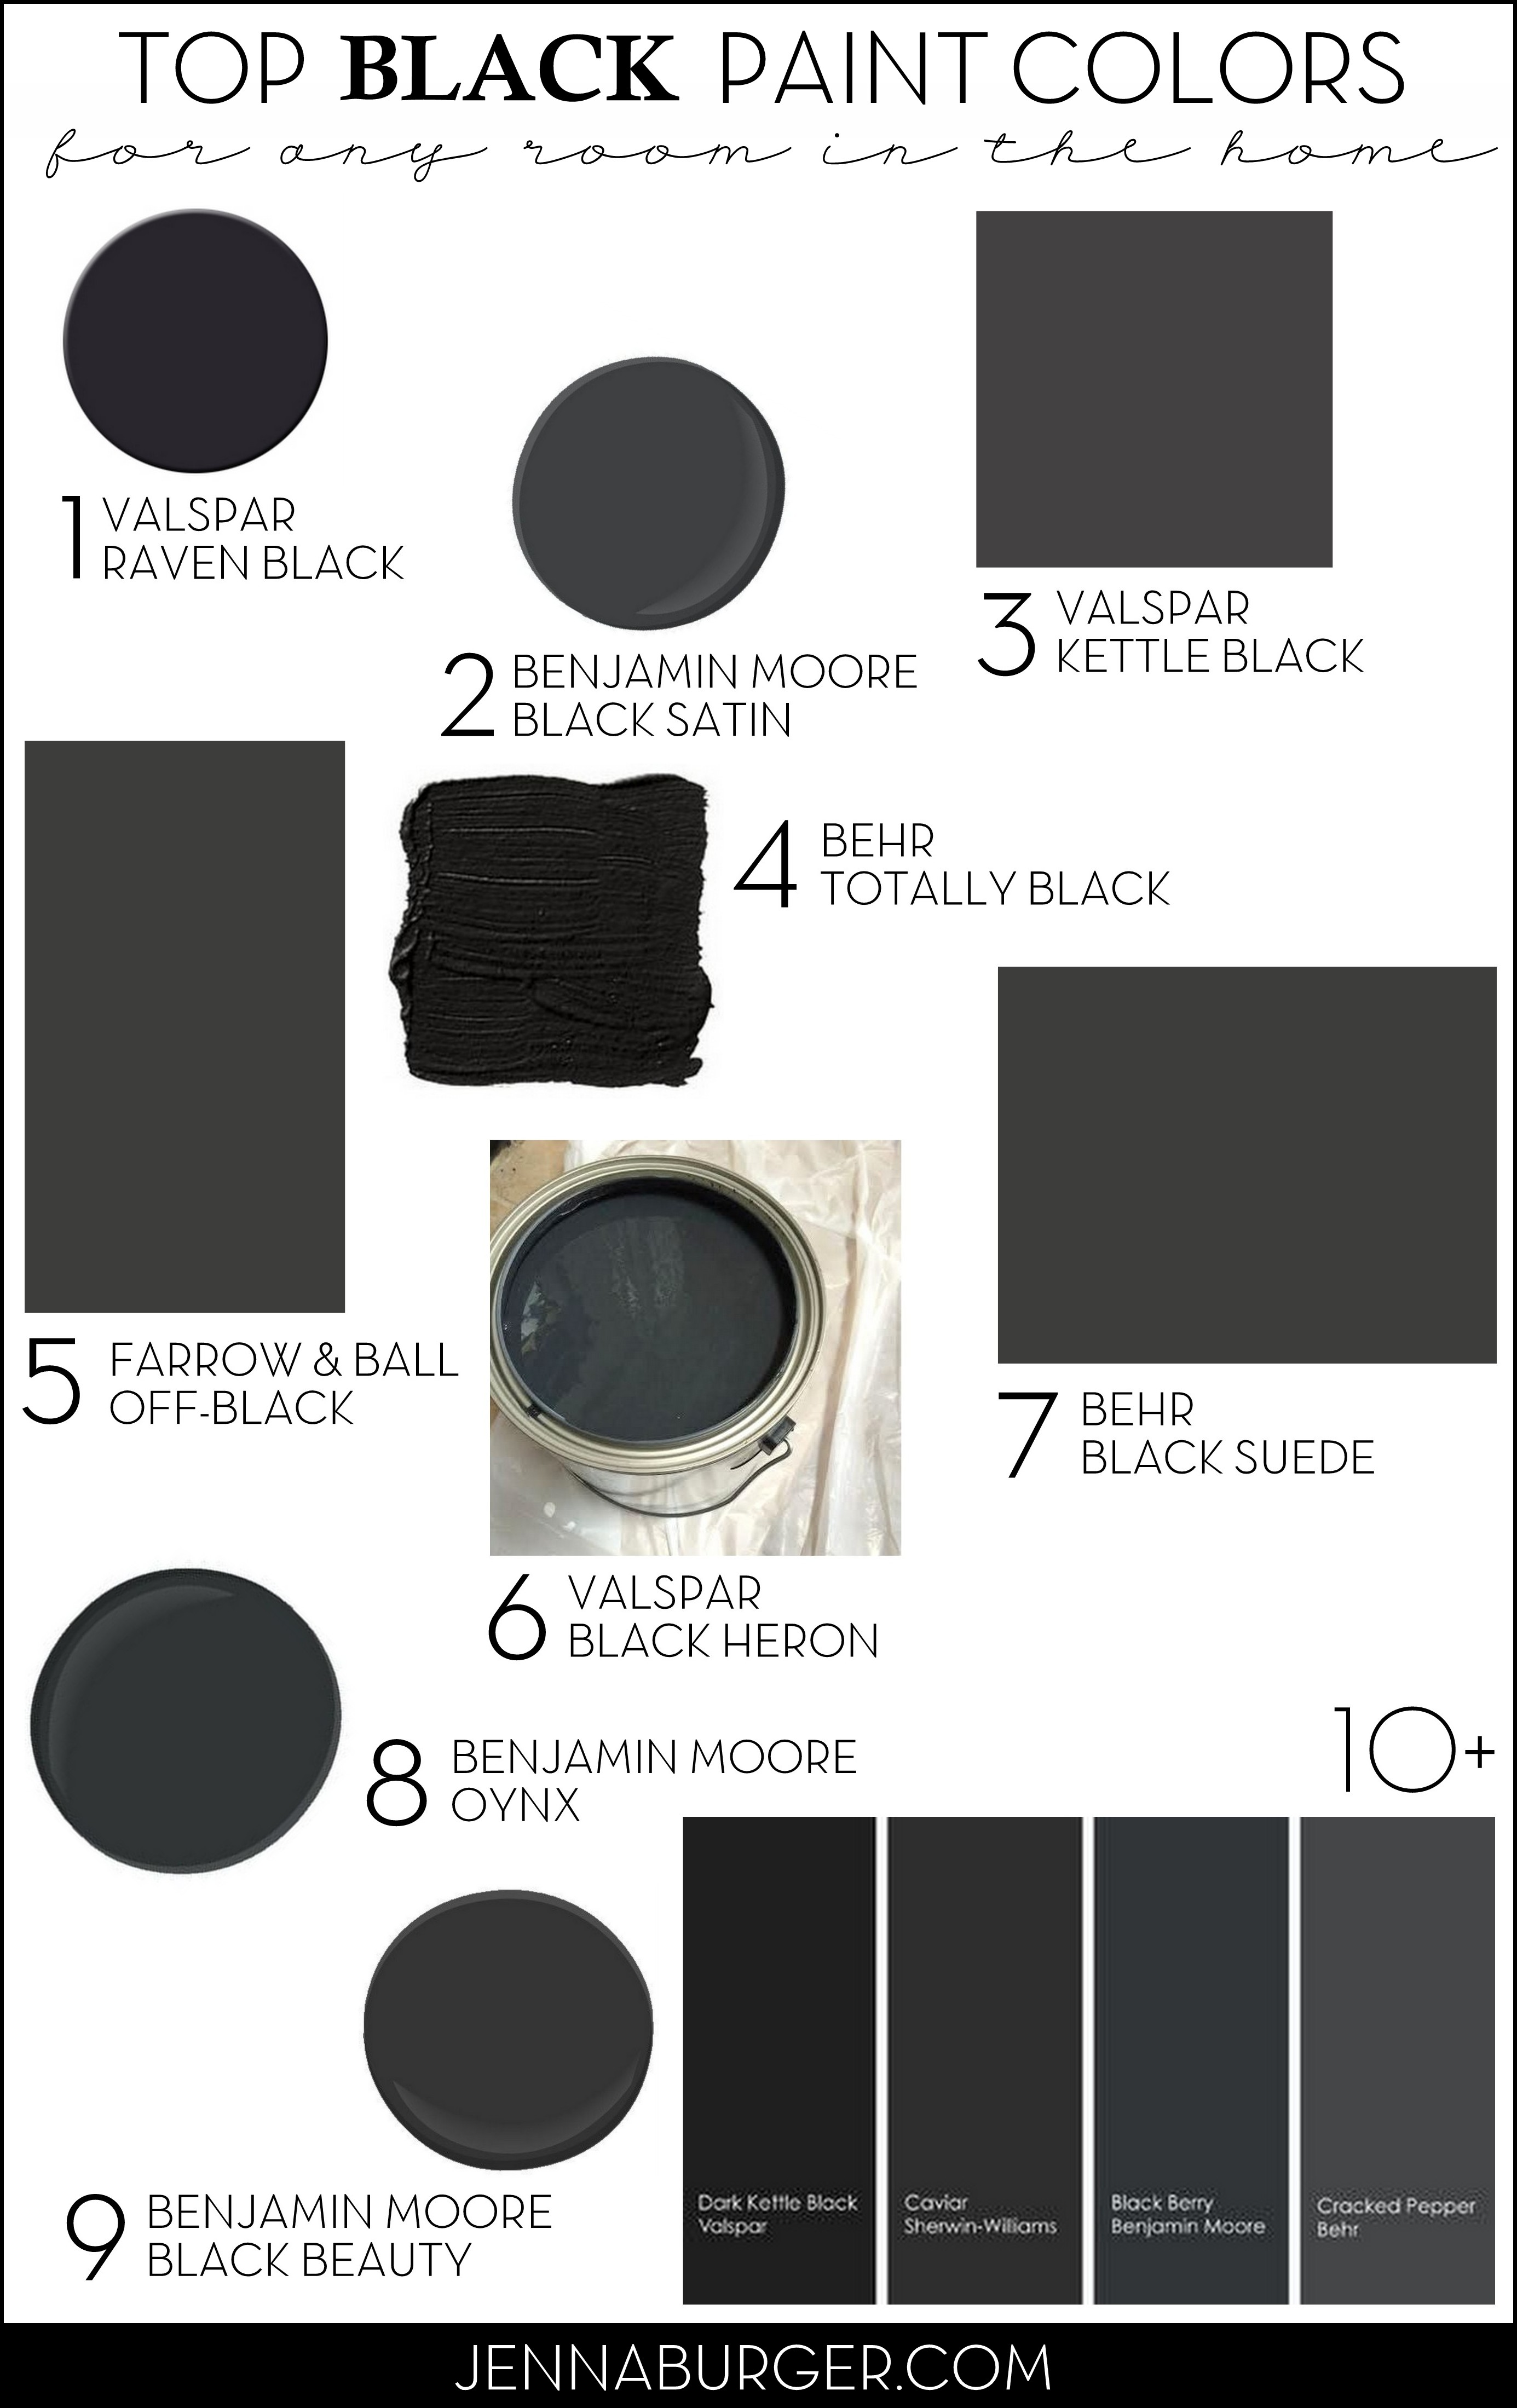 Top paint colors for black walls painting a black wall in the living room jenna burger Best paint for interior walls